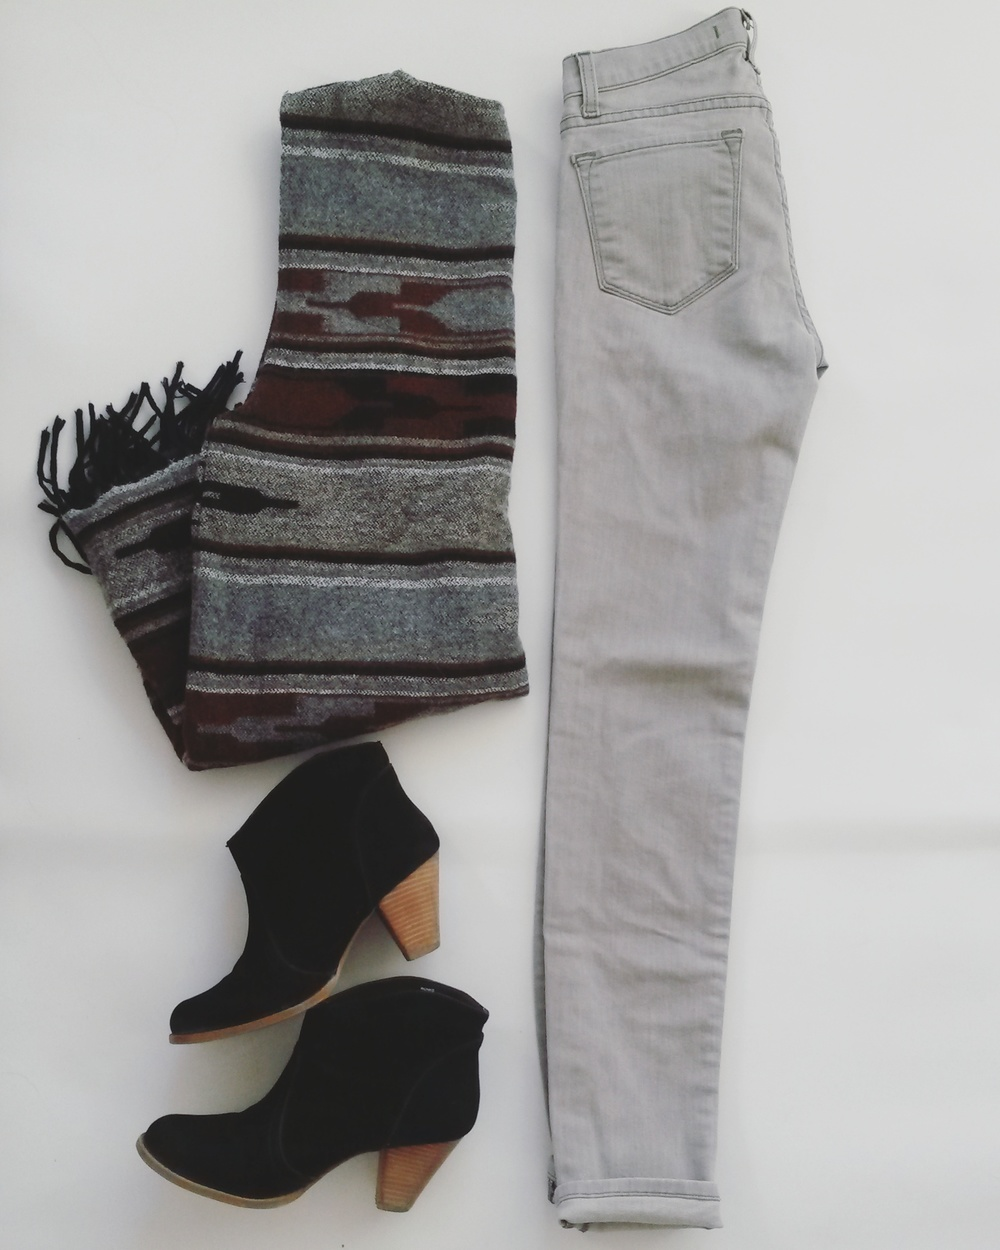 Chico's wool tribal vest, J Brand gray skinny jeans, black booties, all thrifted